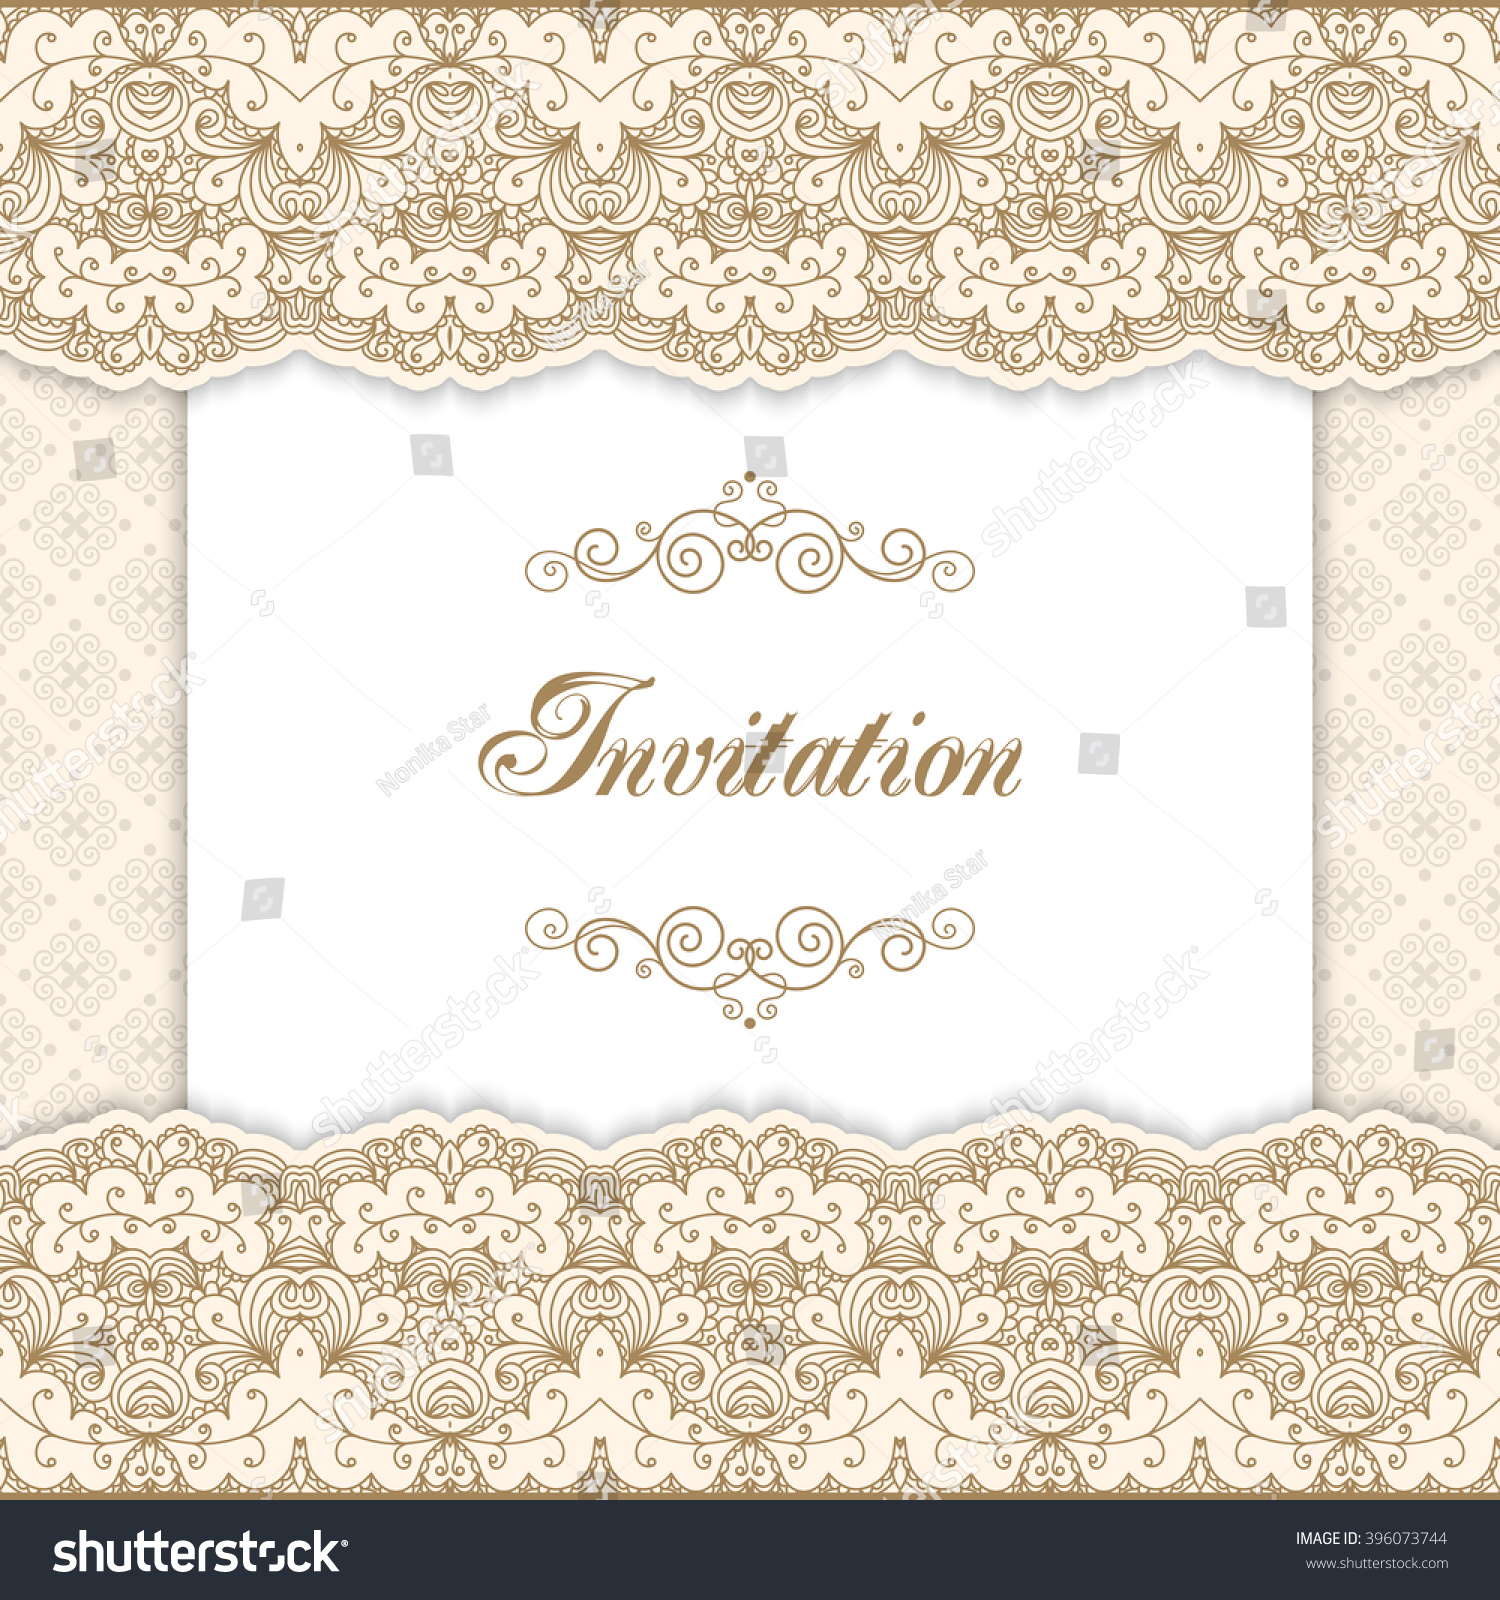 Vintage Invitation Template With Lacy Borders. Vector Illustration